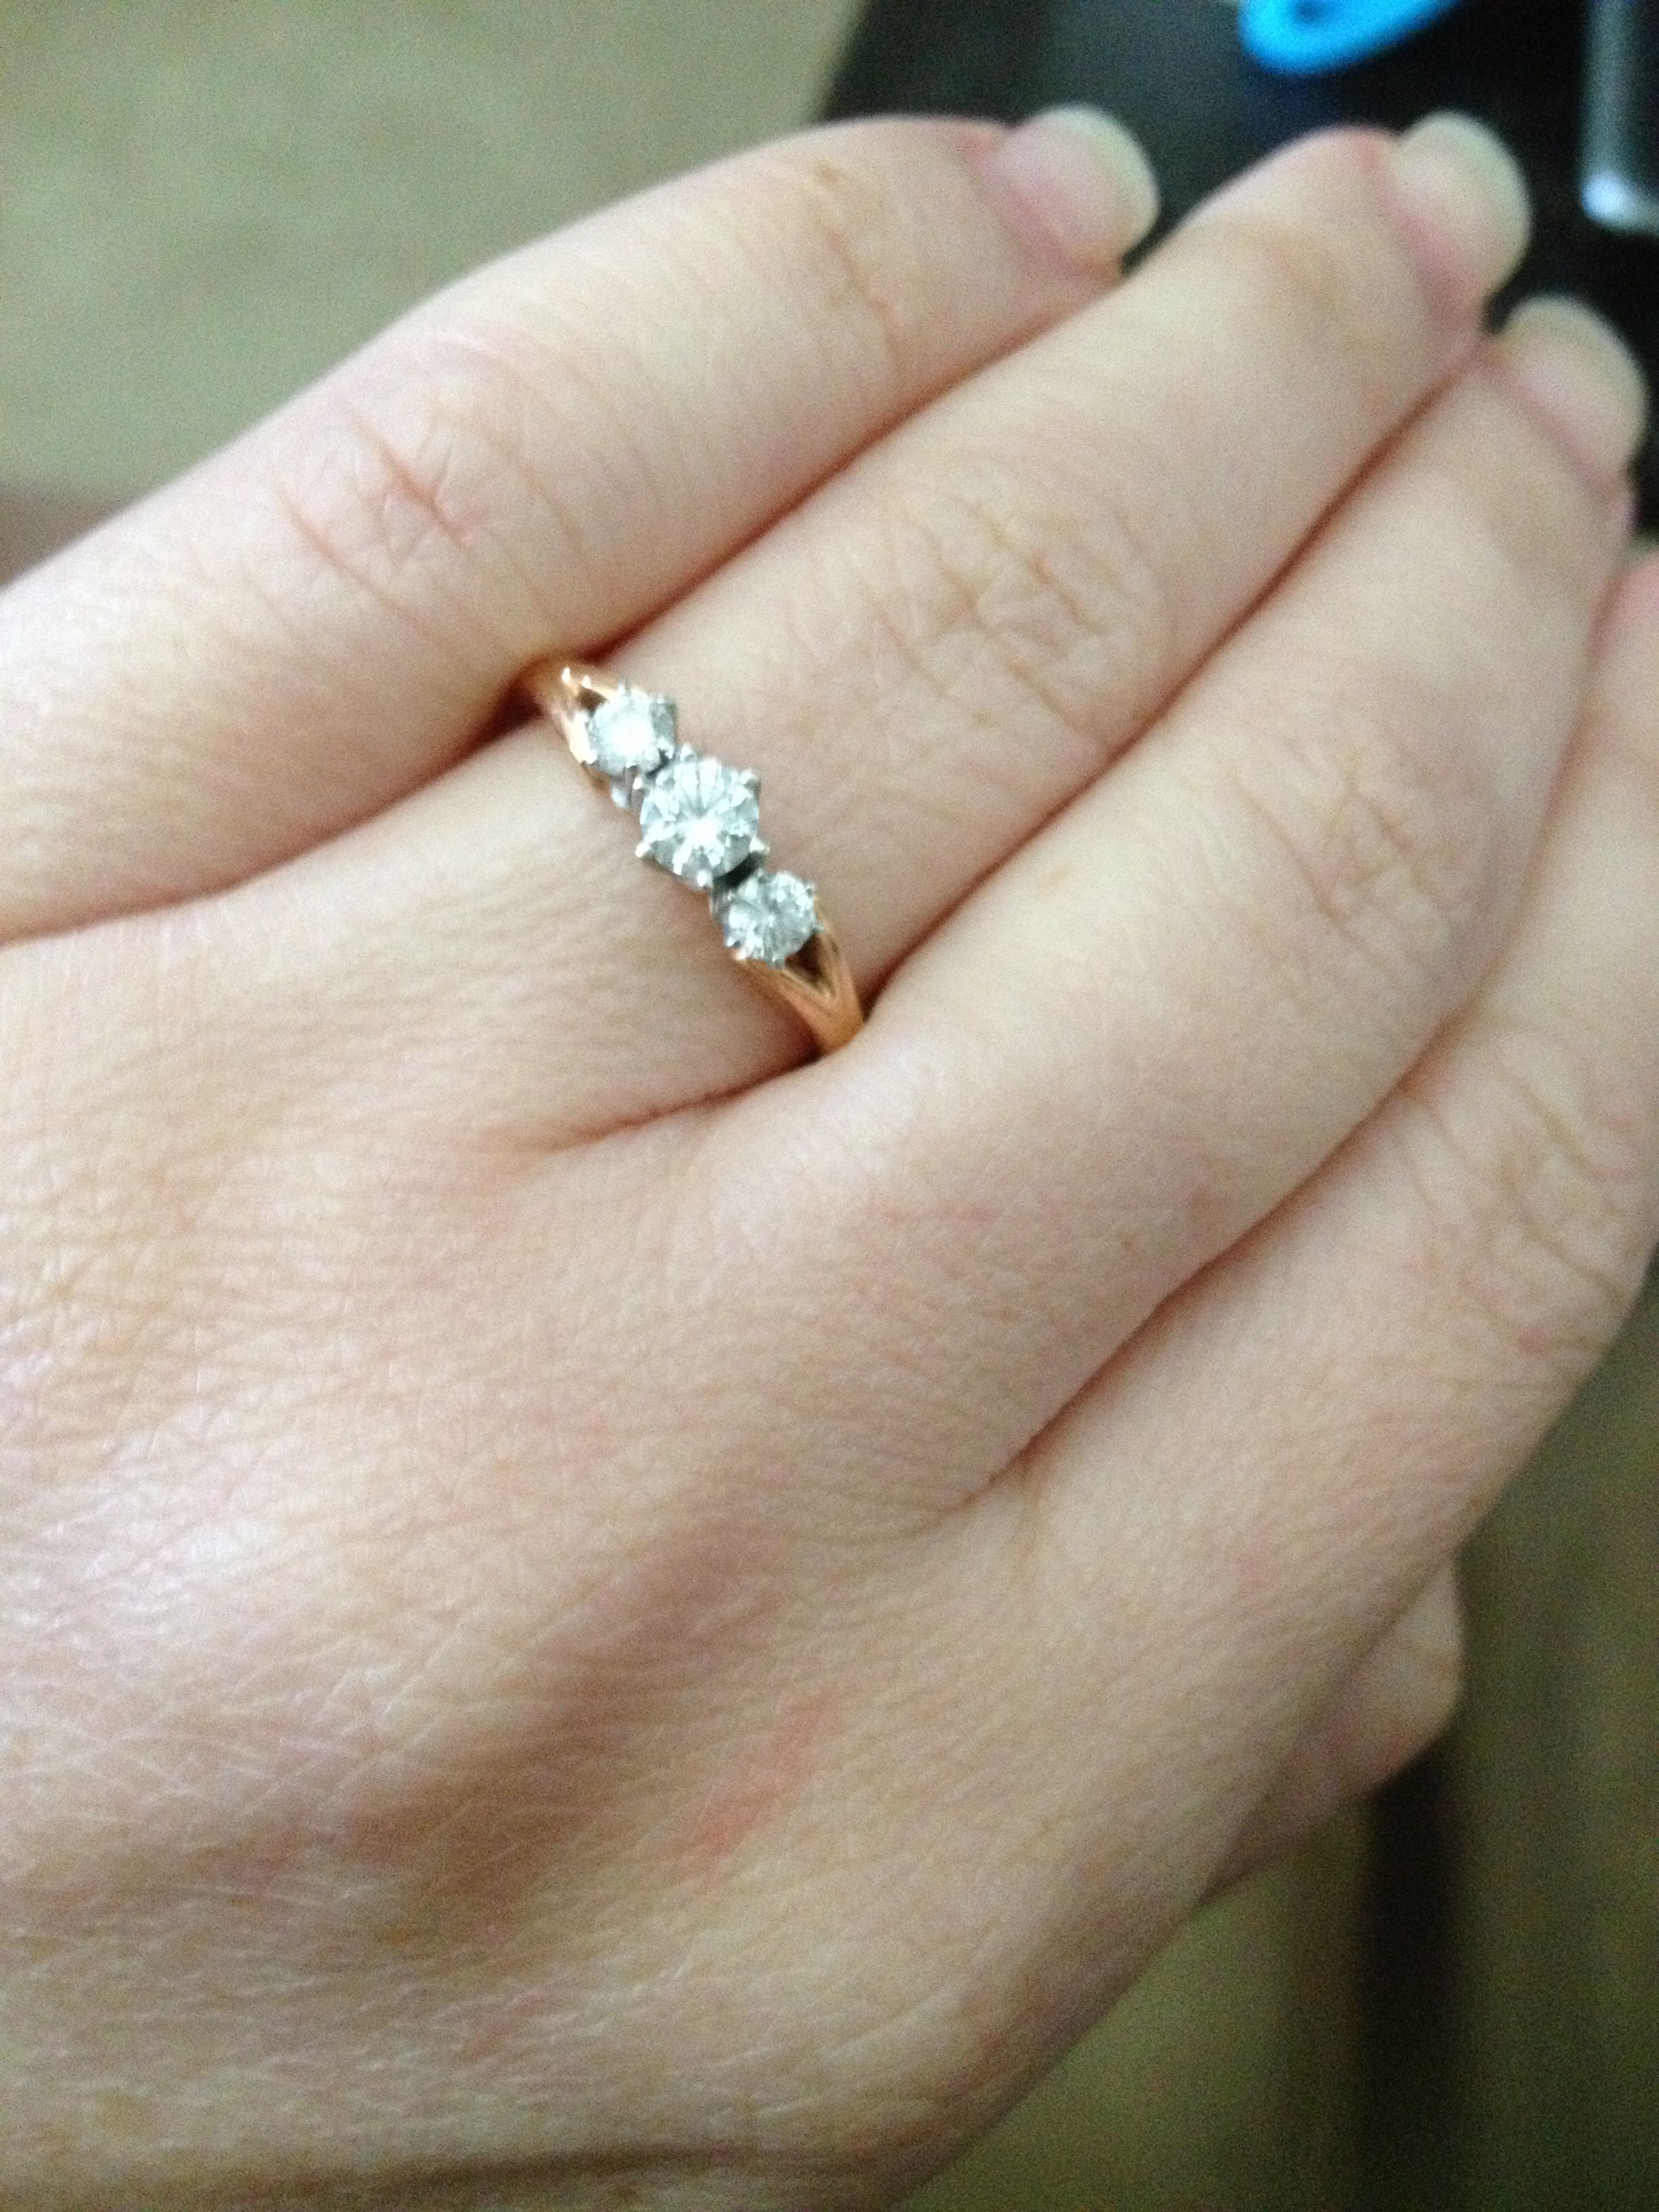 Rosegold 3 Diamonds Engagement Ring Perfect For Small Hands